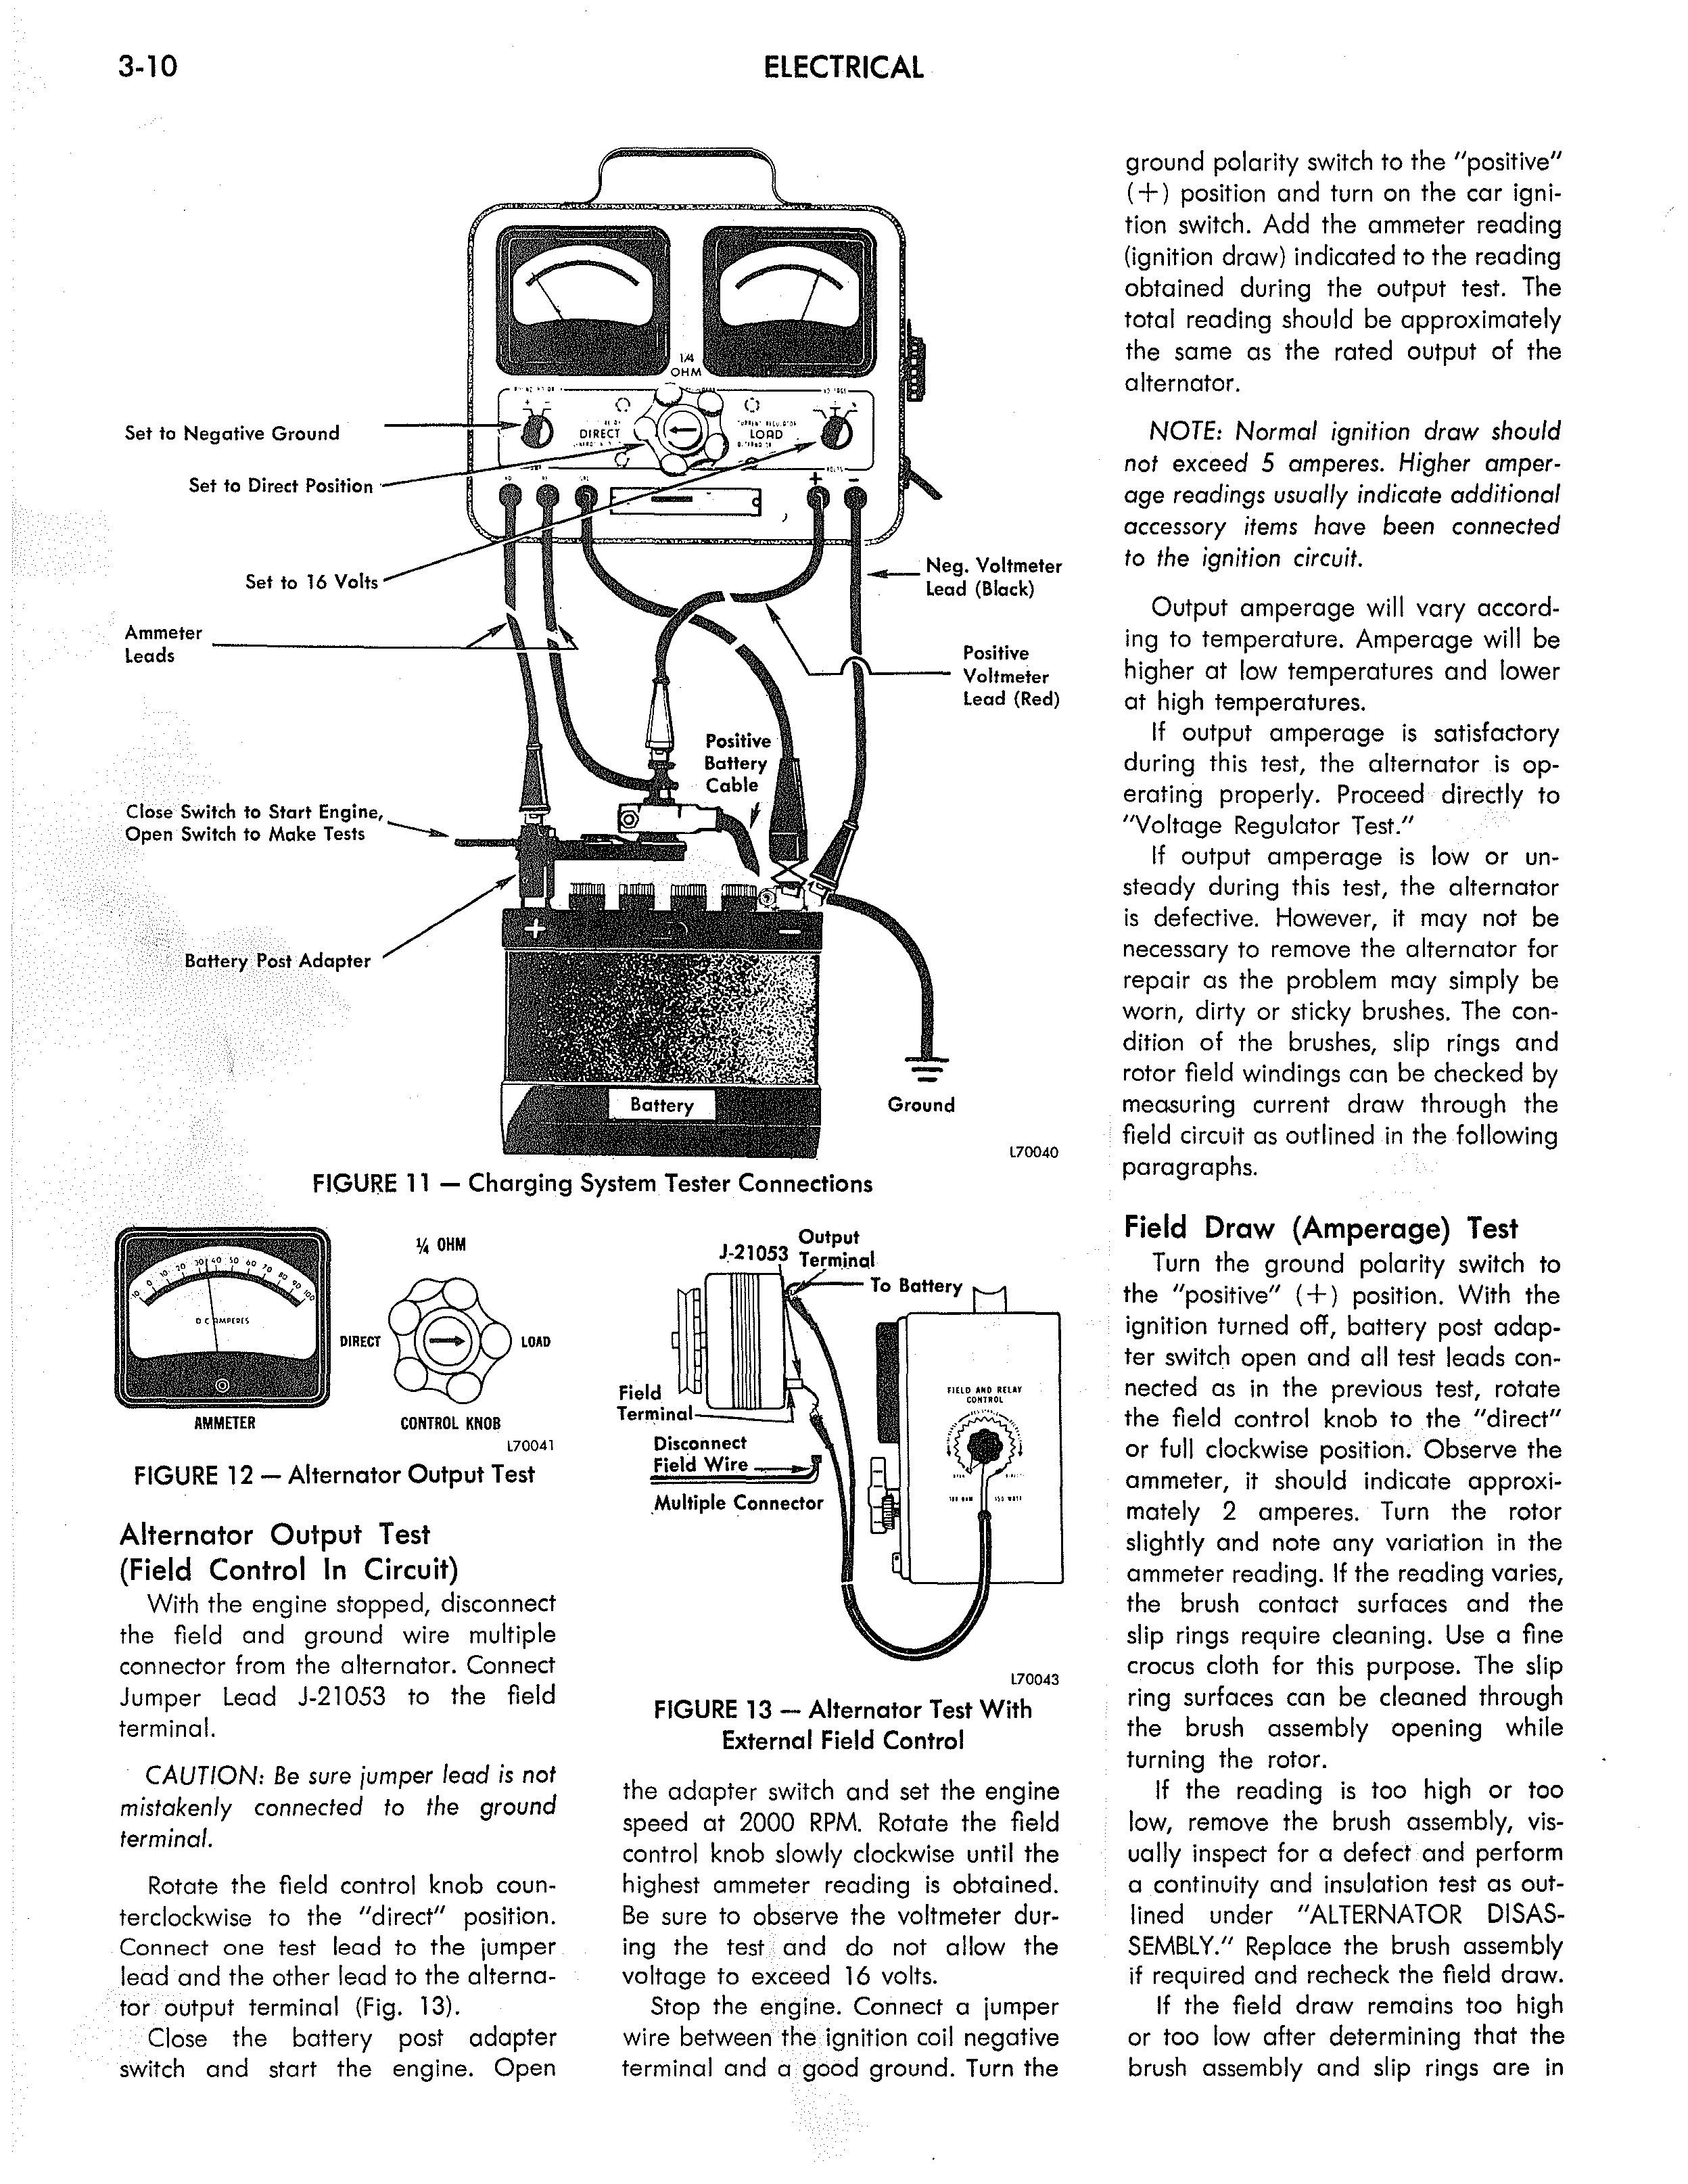 1973 AMC Technical Service Manual page 90 of 487